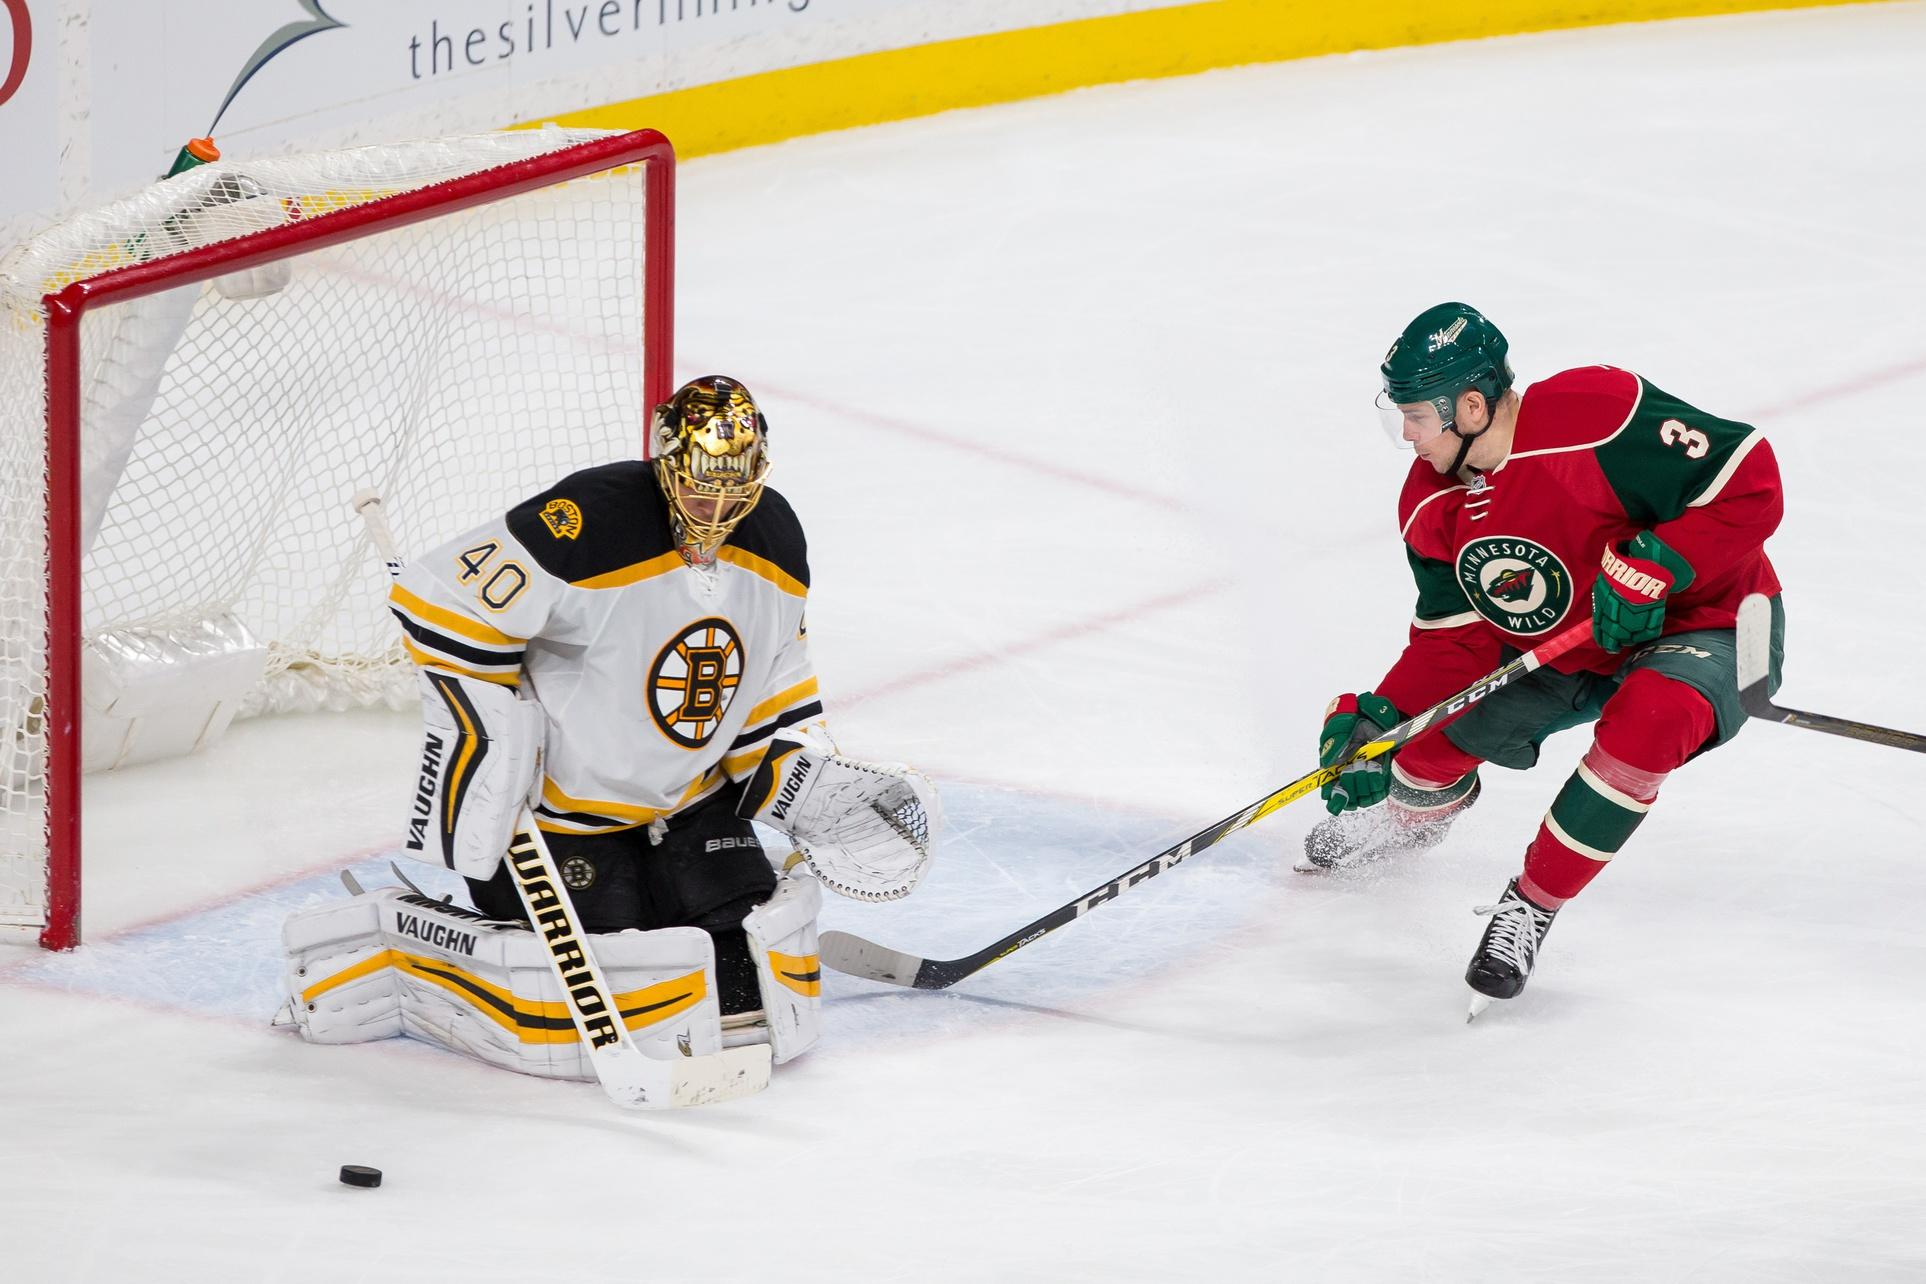 Bruins coach Bruce Cassidy explains why Charlie Coyle trade will benefit Boston